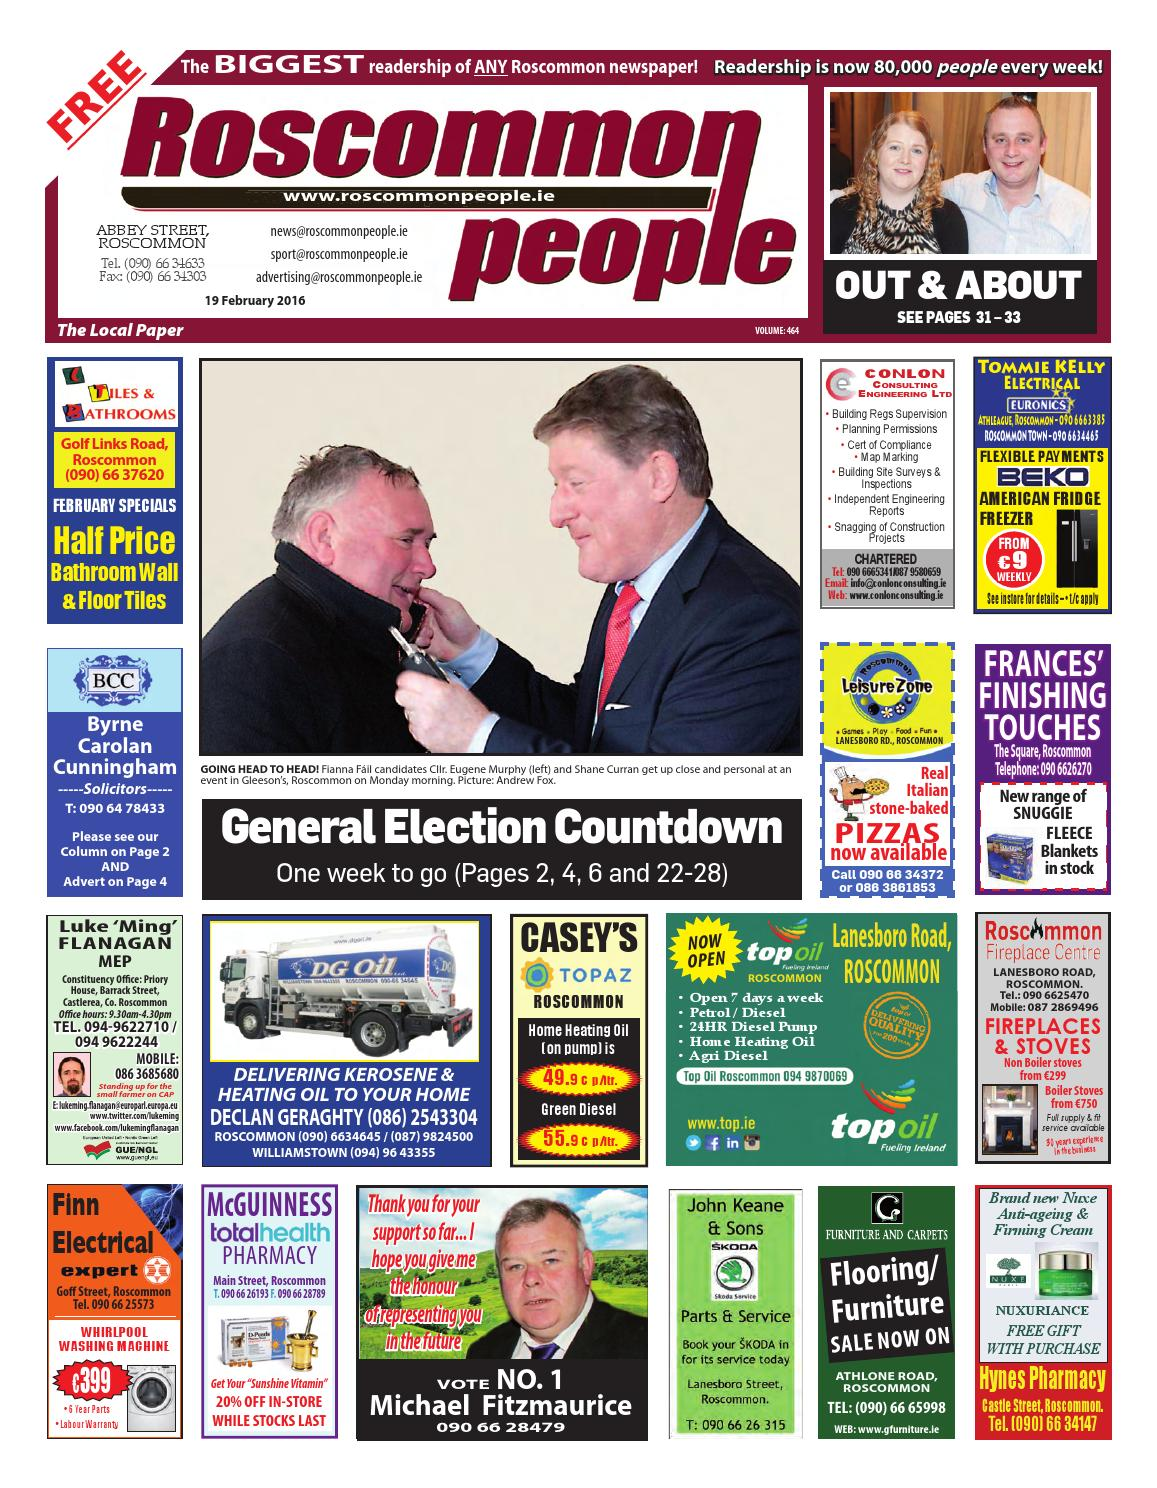 a2a4307cc4 2016 02 19 by Roscommon People - issuu